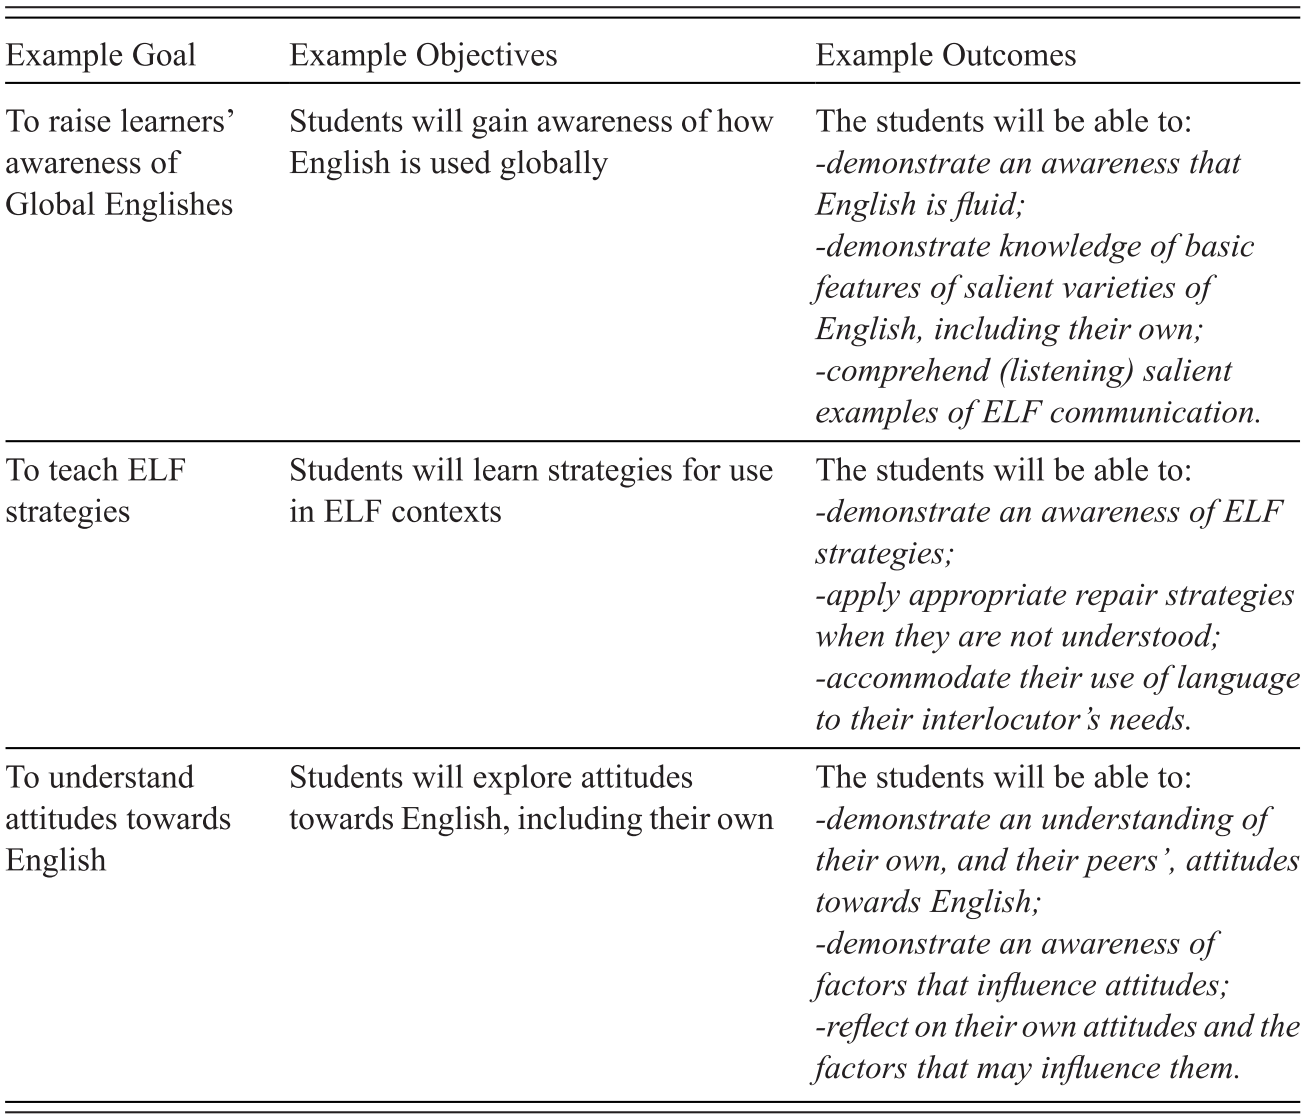 Introducing Global Englishes for Language Teaching (Part I